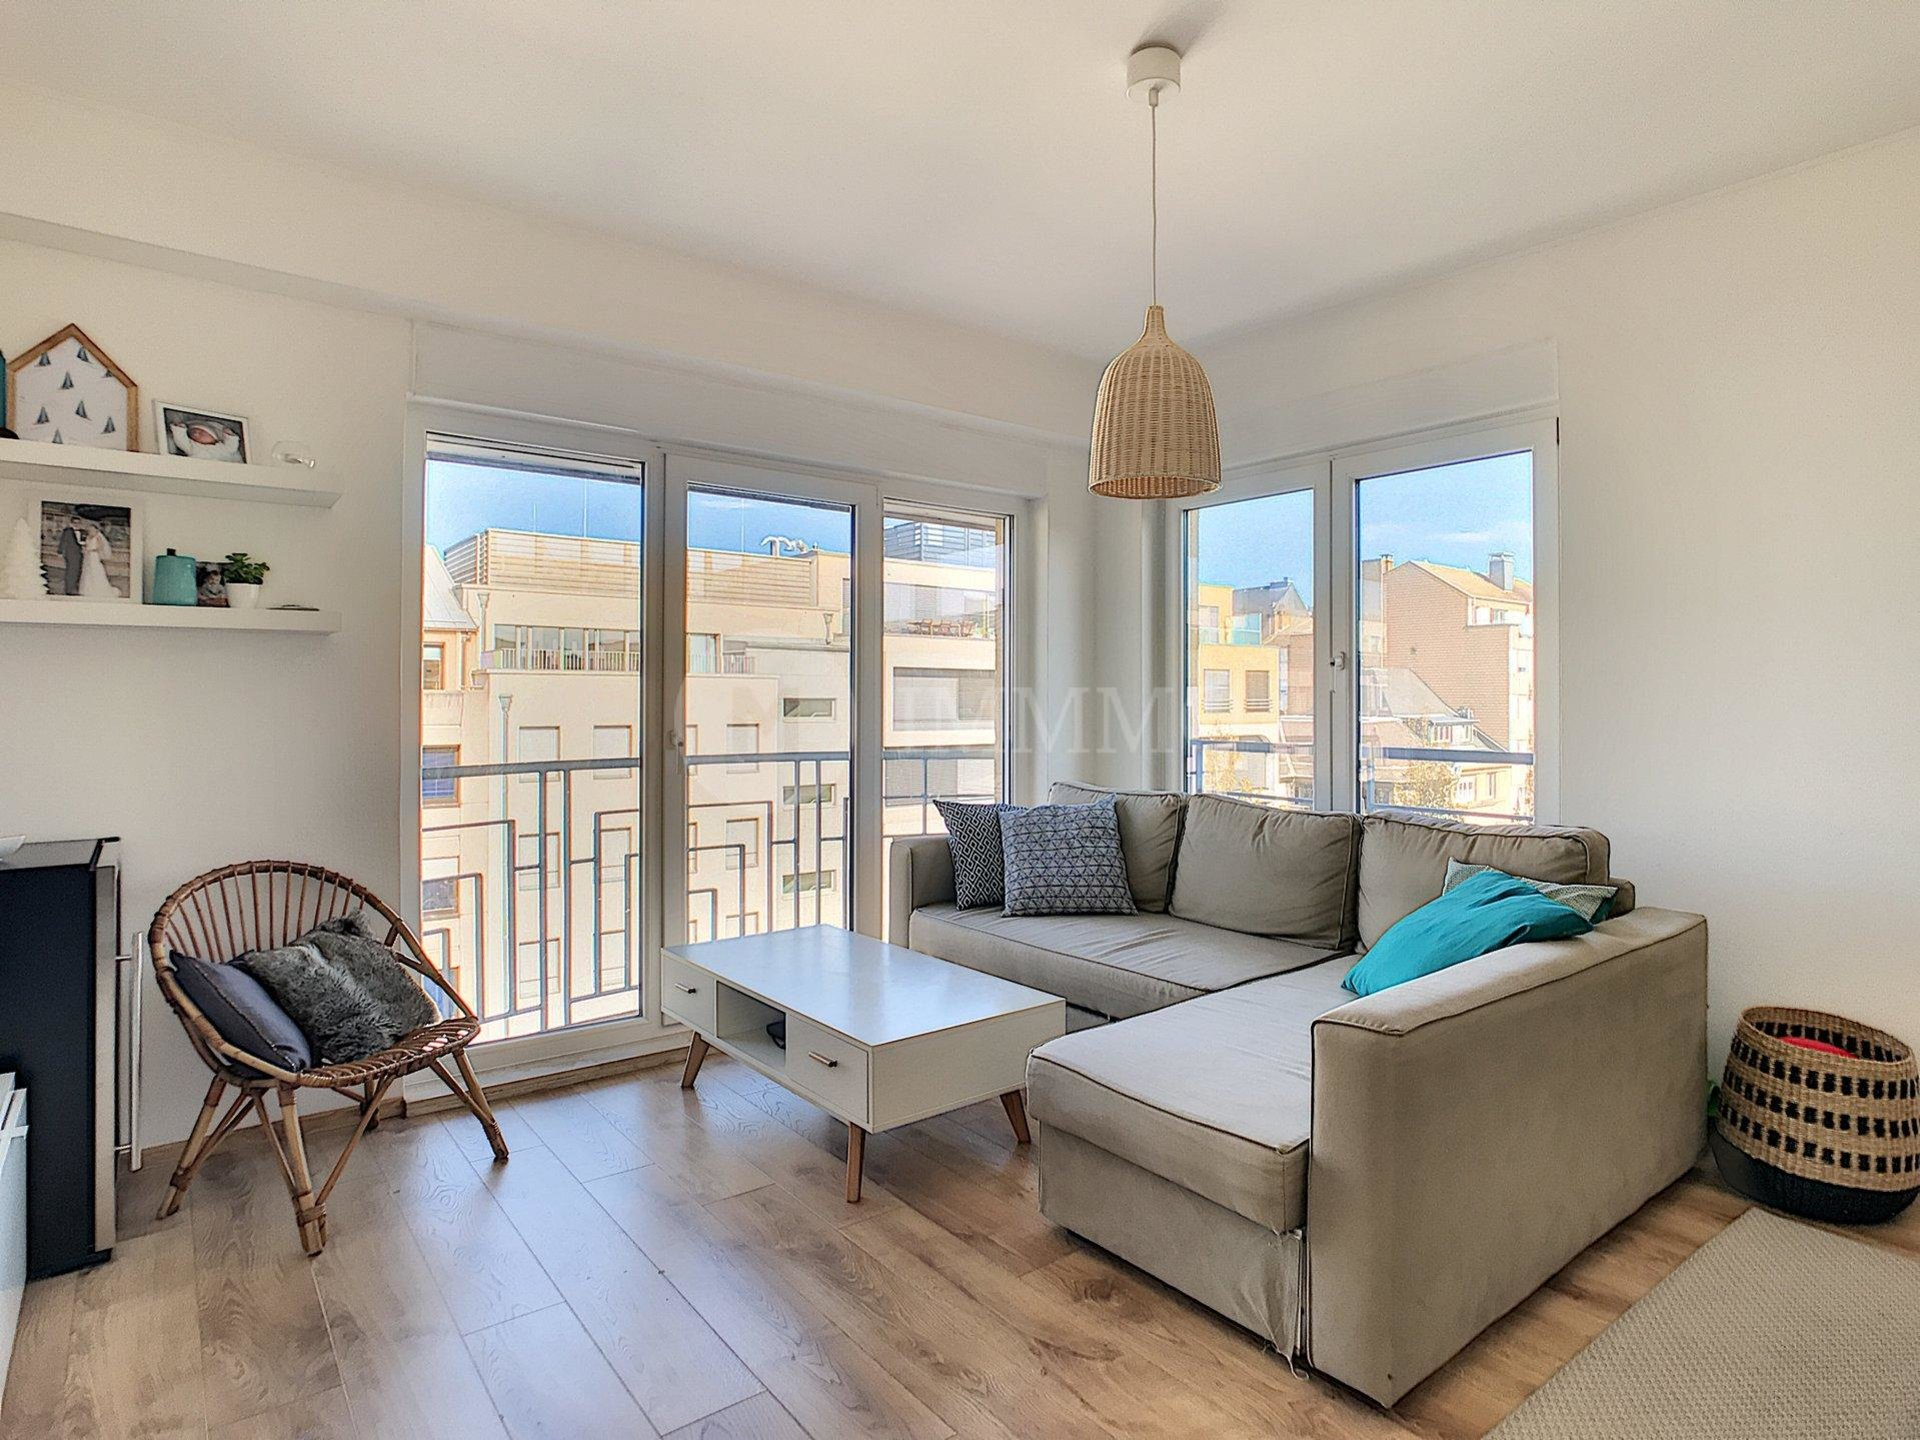 2 Bedroom apartment - rue Glesener